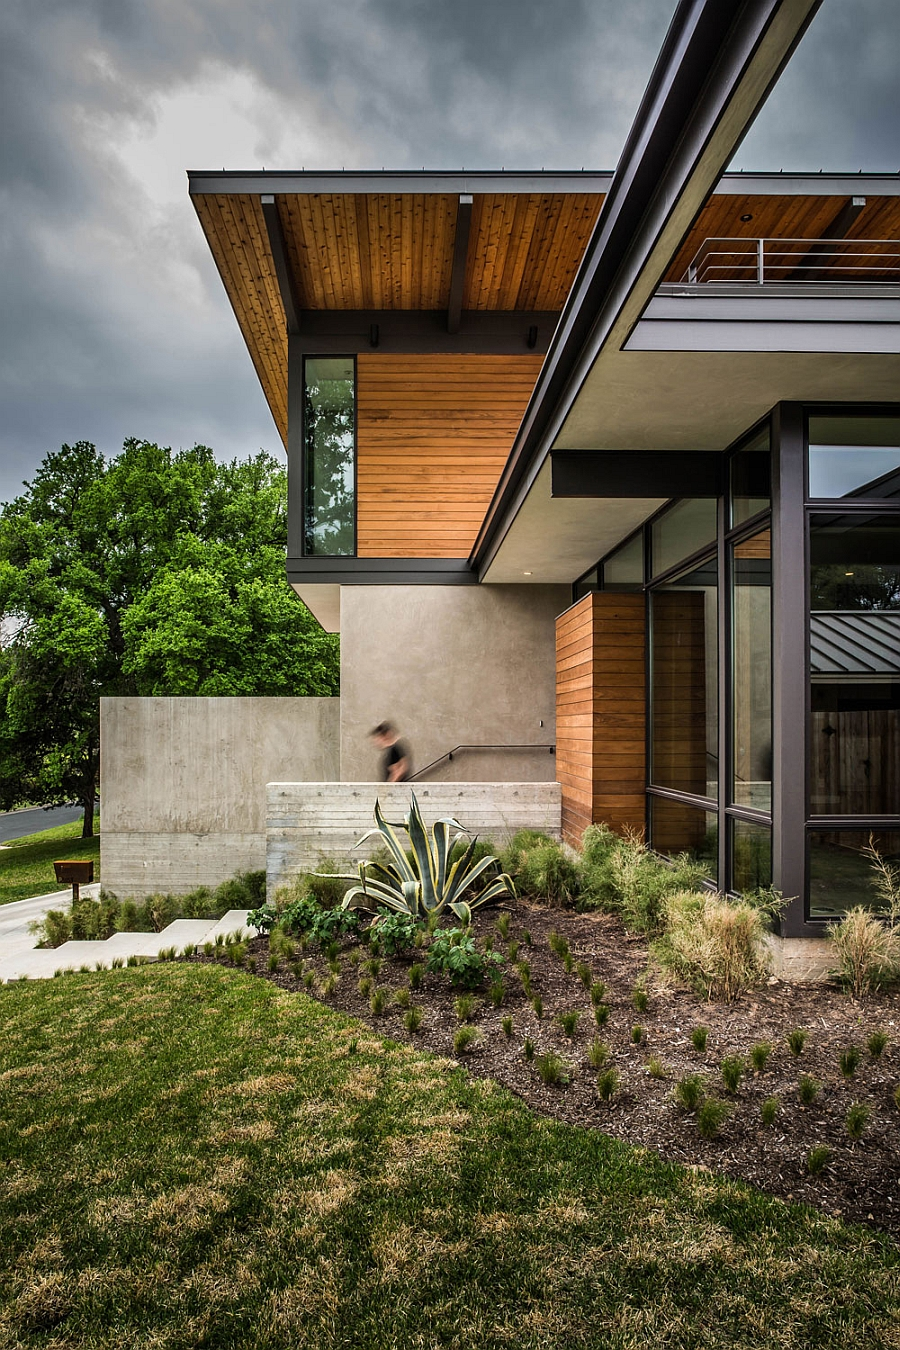 View In Gallery Exterior Of The Barton Hills Residence In Texas In Wood,  Steel And Glass